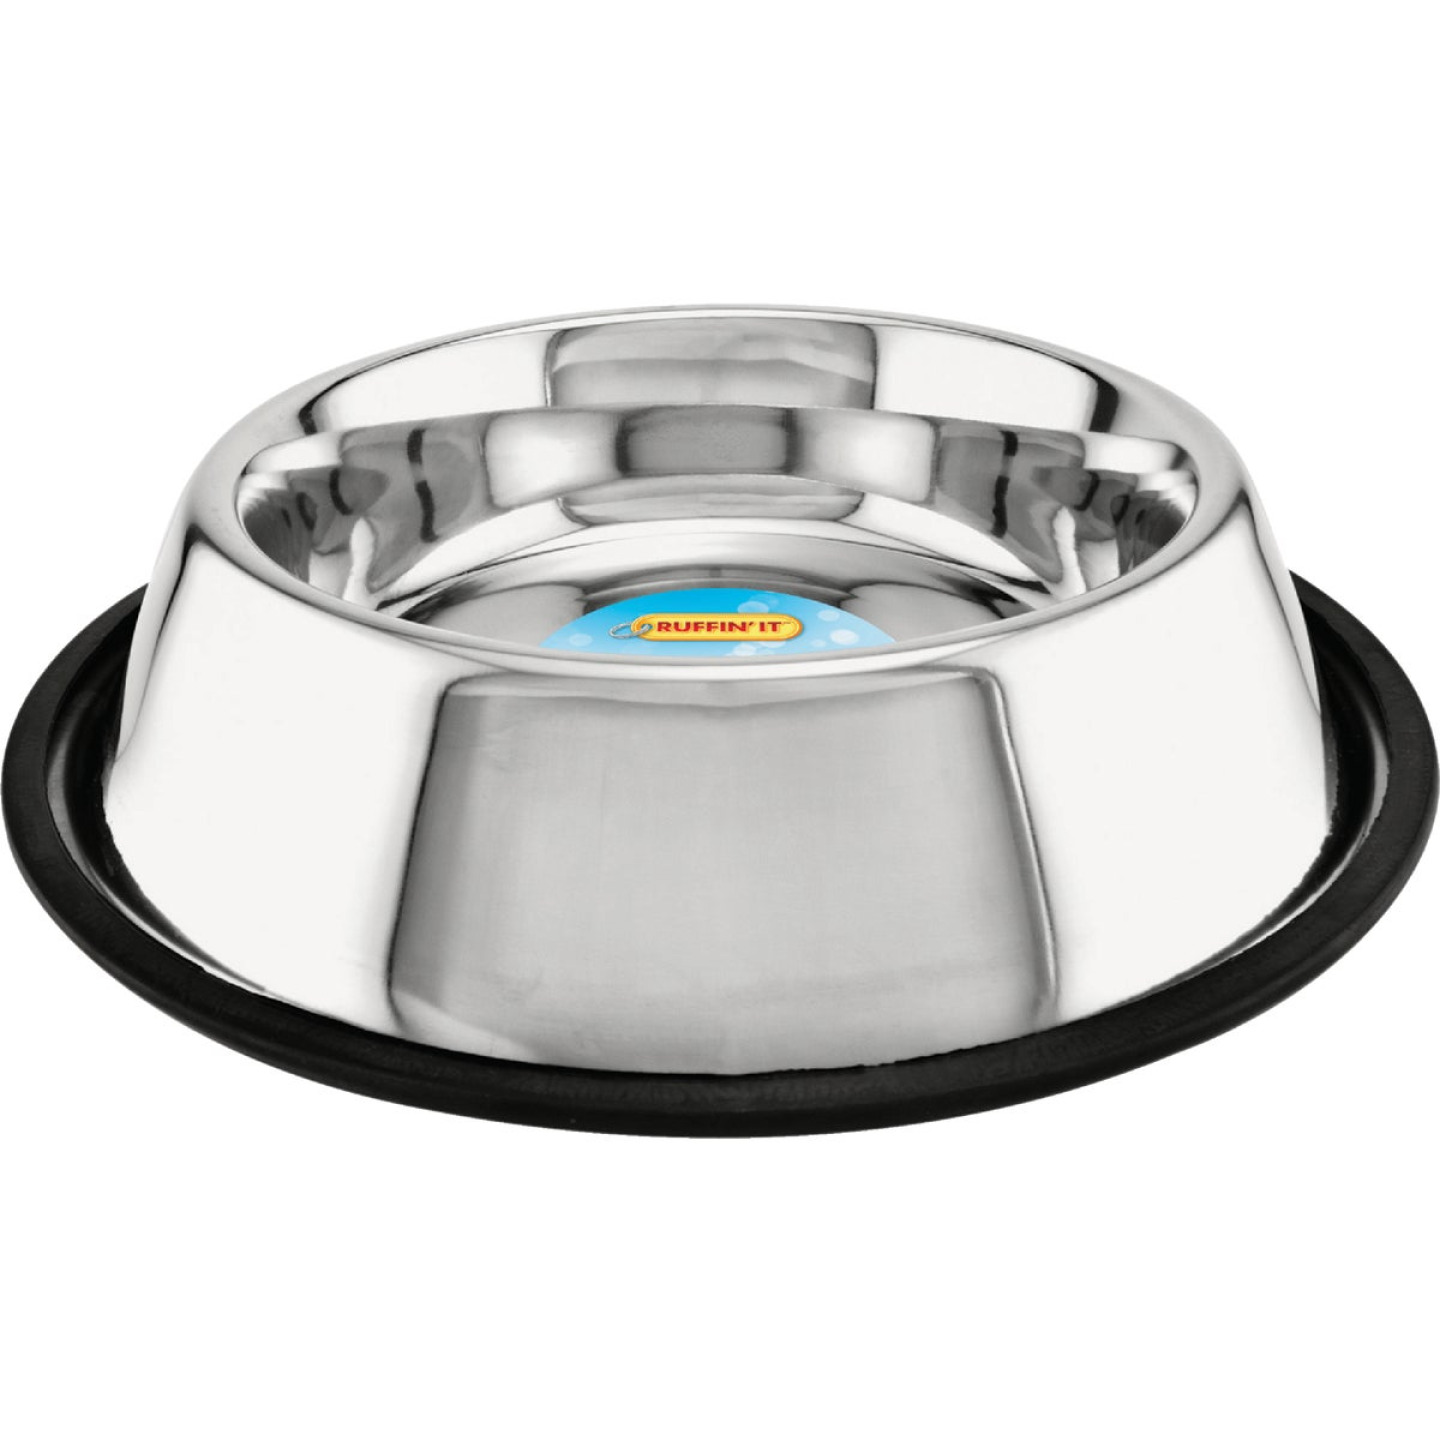 Westminster Pet Ruffin' it Stainless Steel Round 32 Oz. Non-Skid Pet Food Bowl Image 1